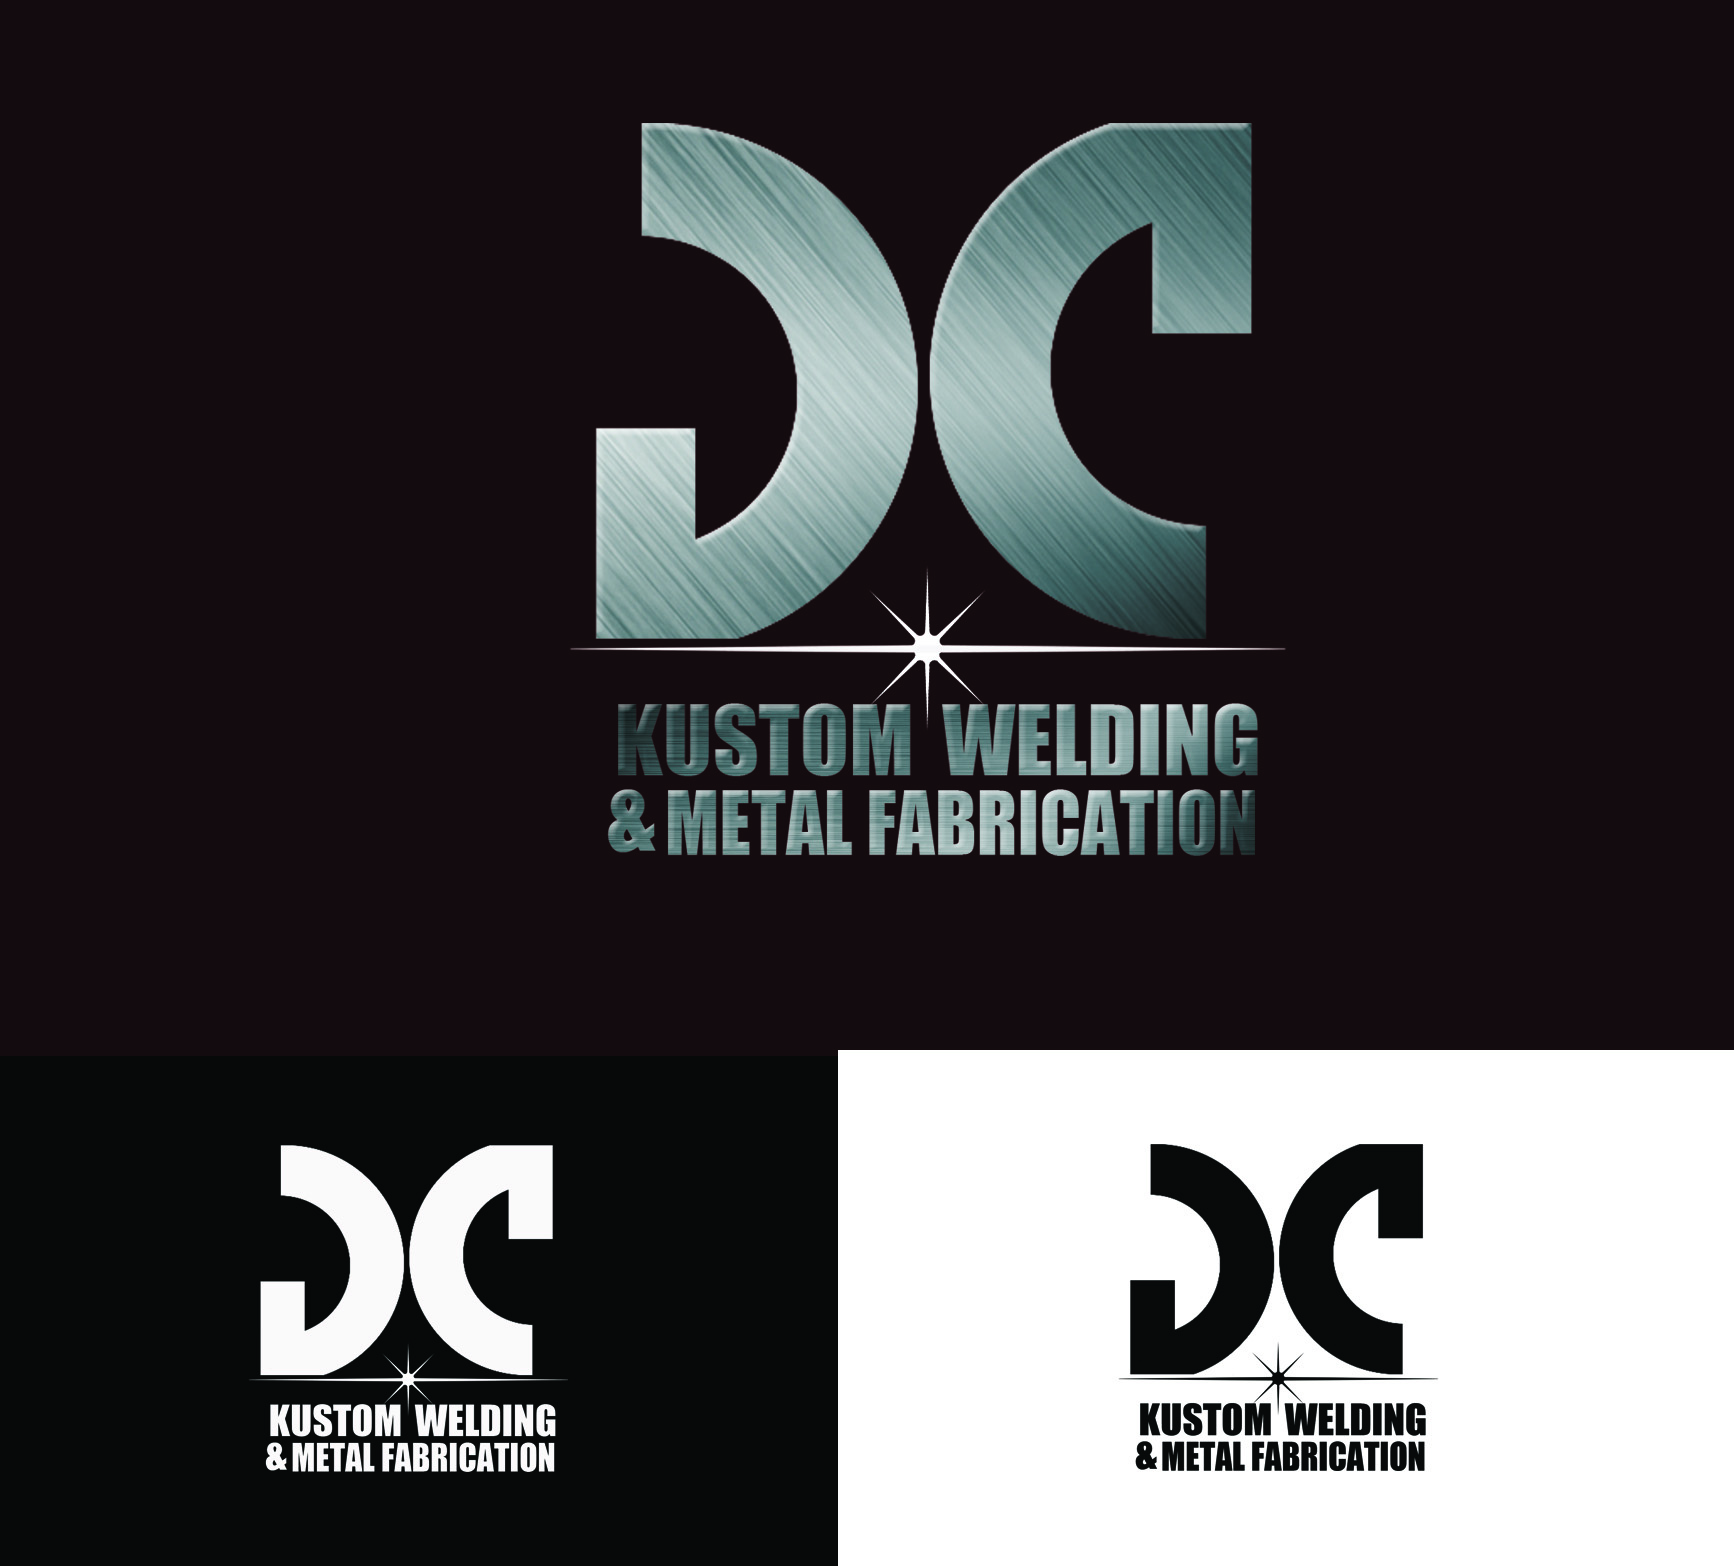 Logo Design by Arqui ACOSTA - Entry No. 19 in the Logo Design Contest Imaginative Logo Design for DC KUSTOM WELDING & METAL FABRICATION.